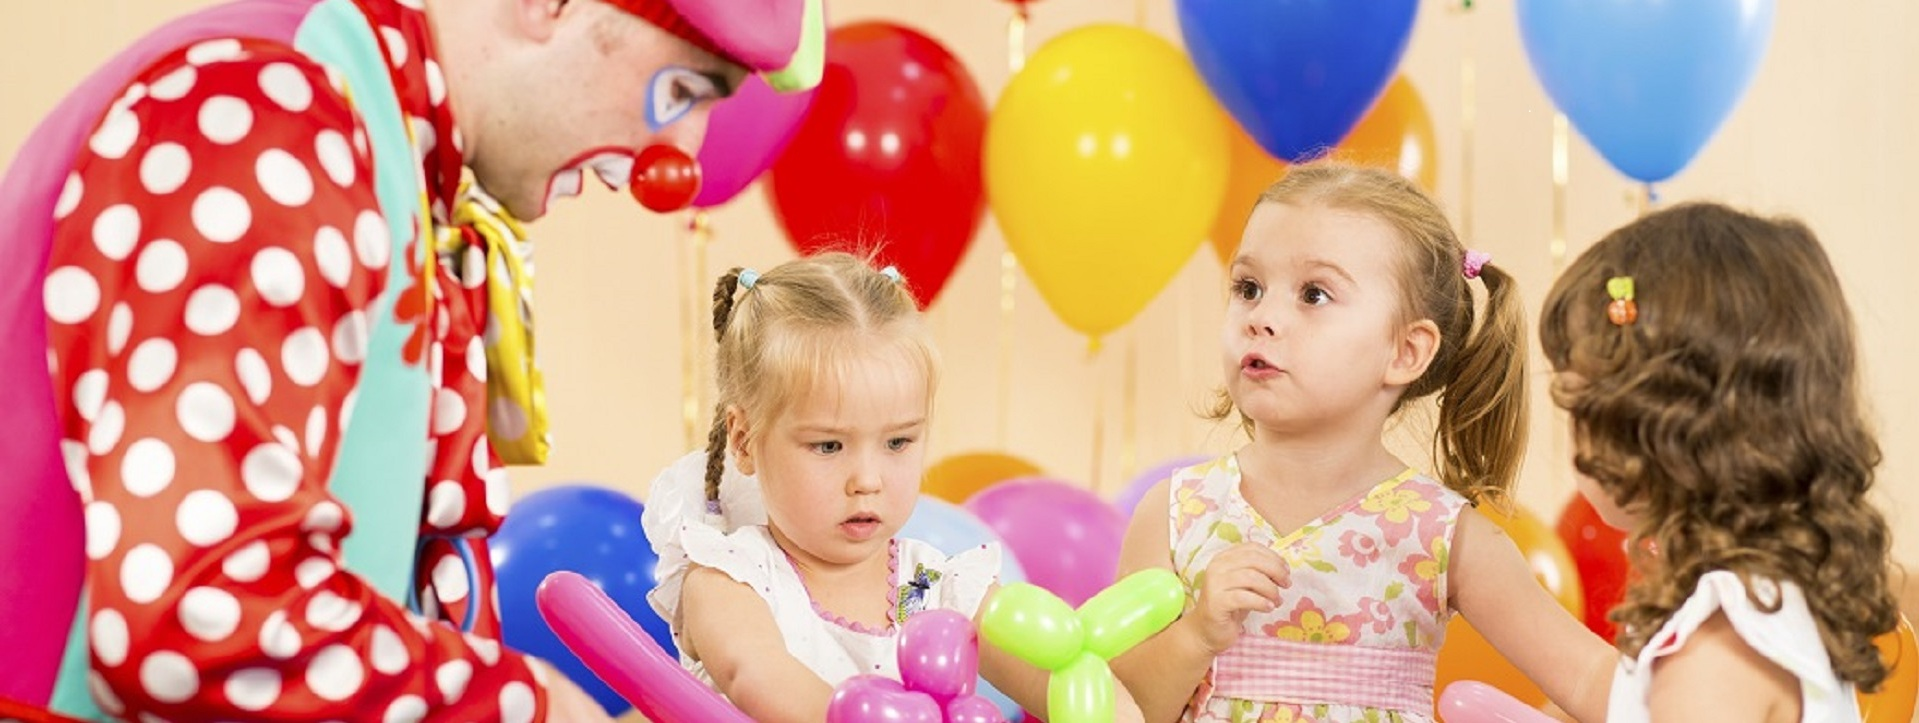 Children's party rooms